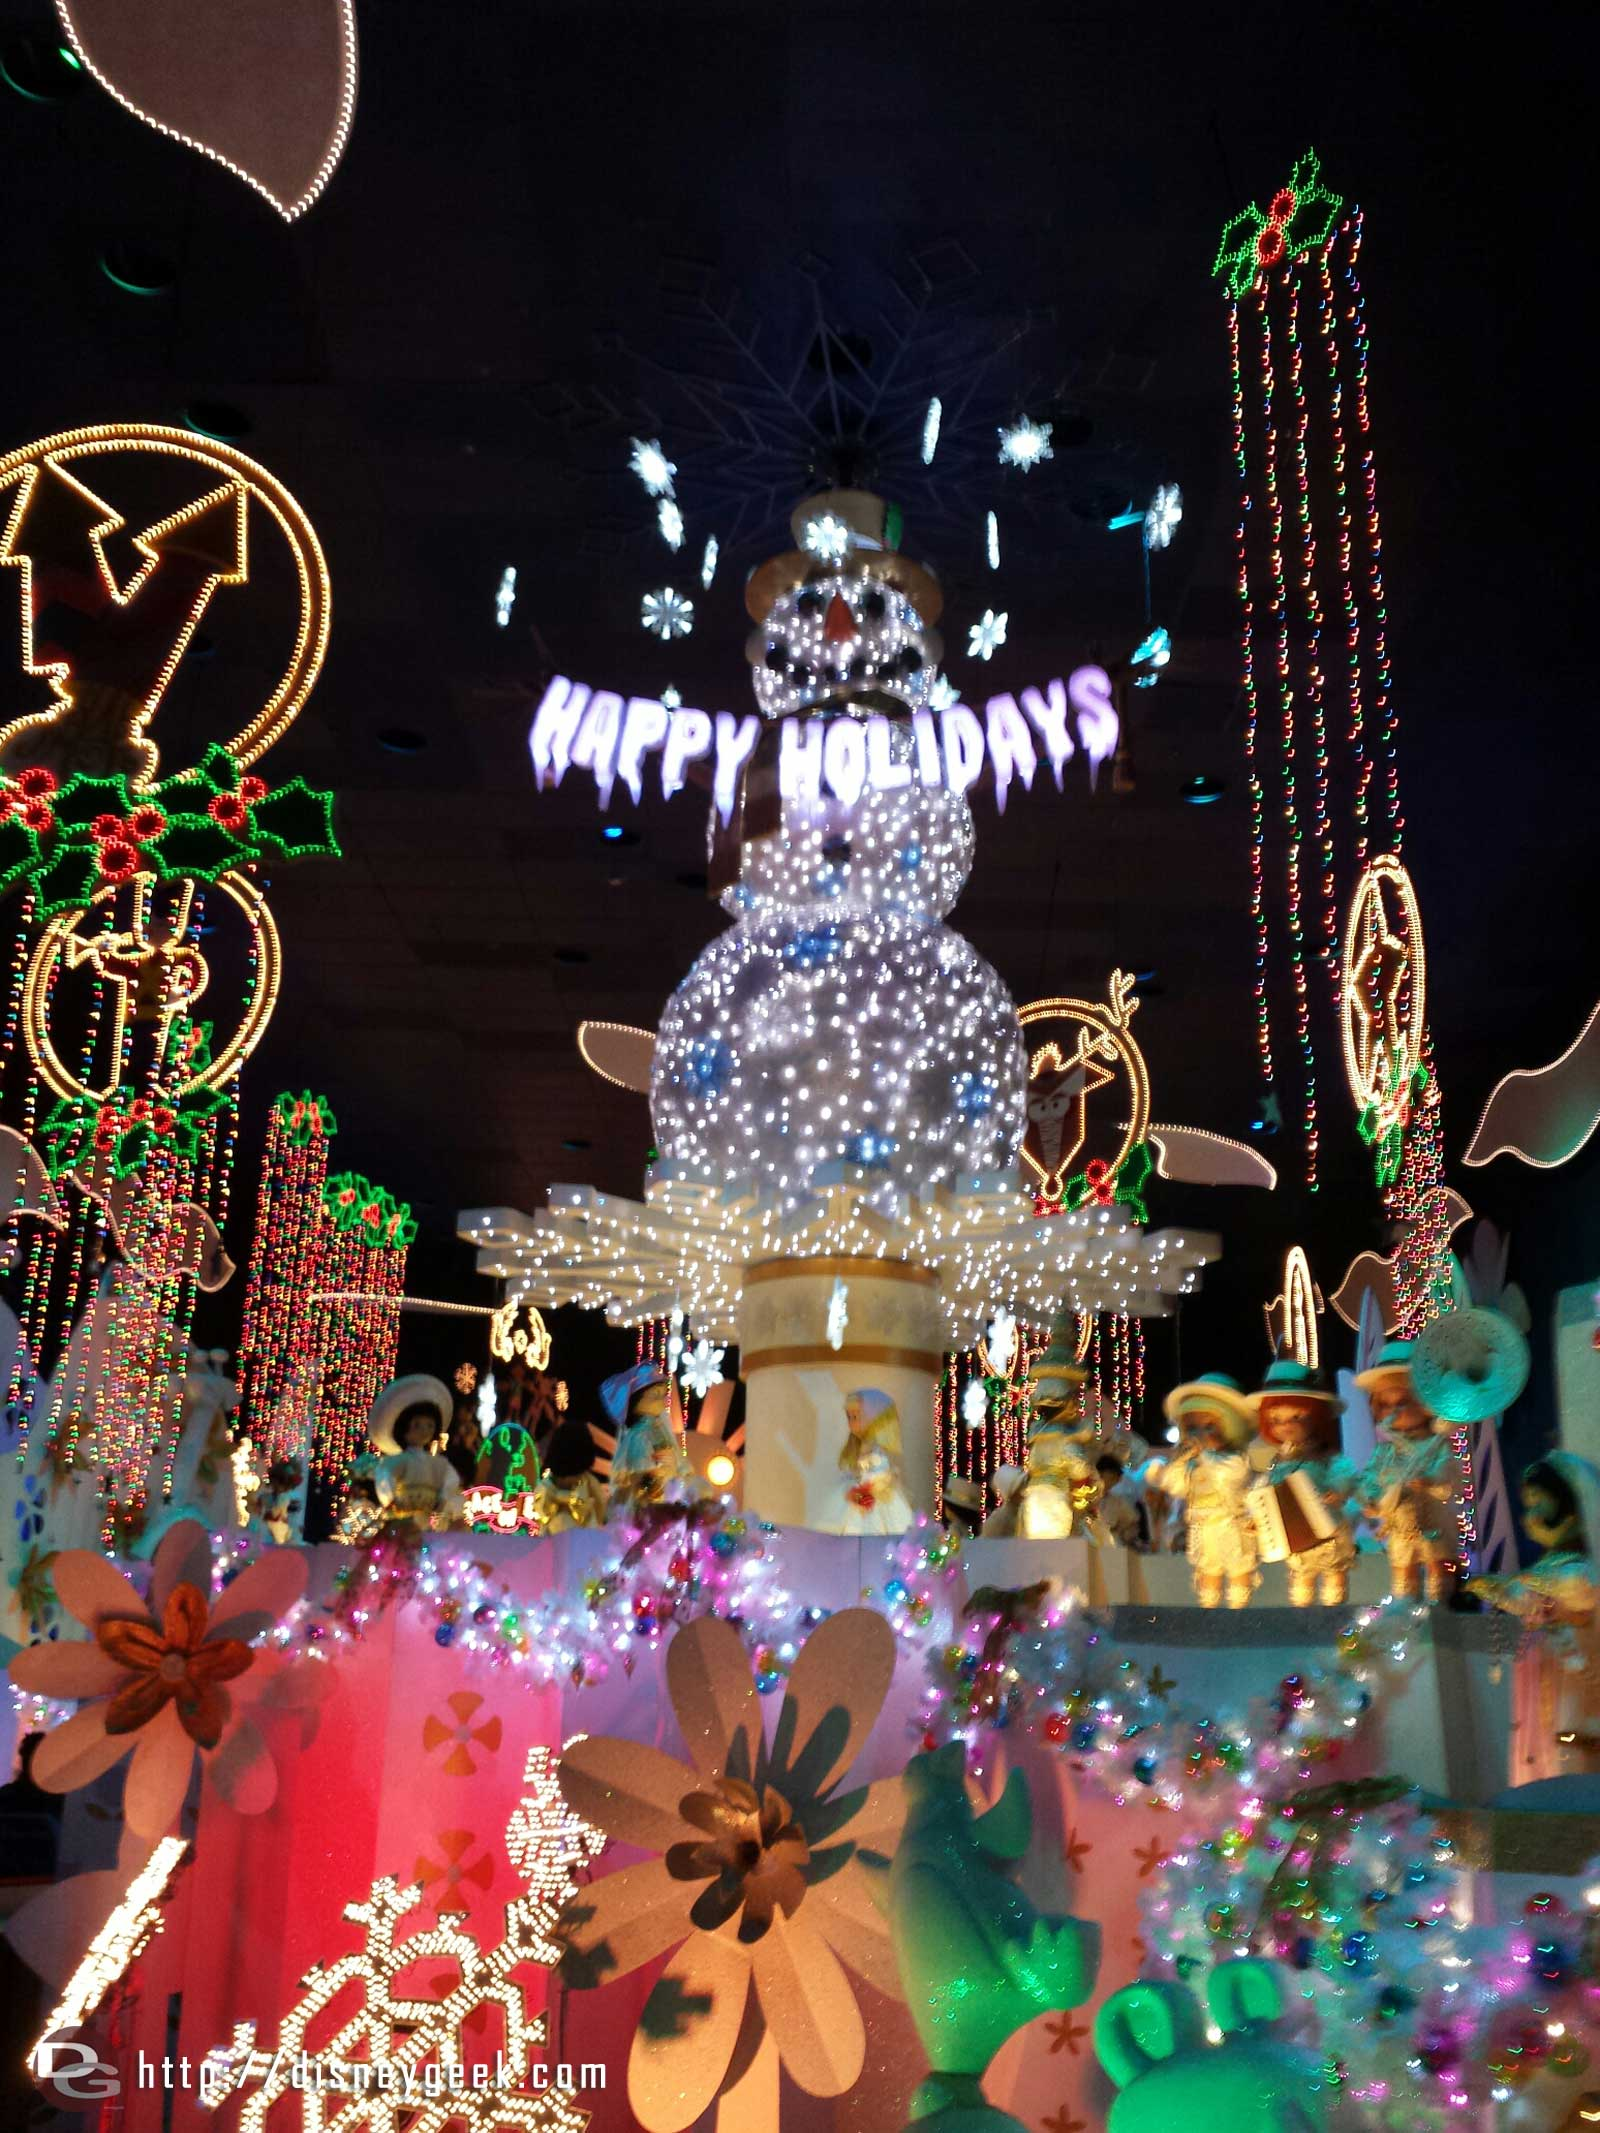 It's a small world holiday finale room #Disneyland